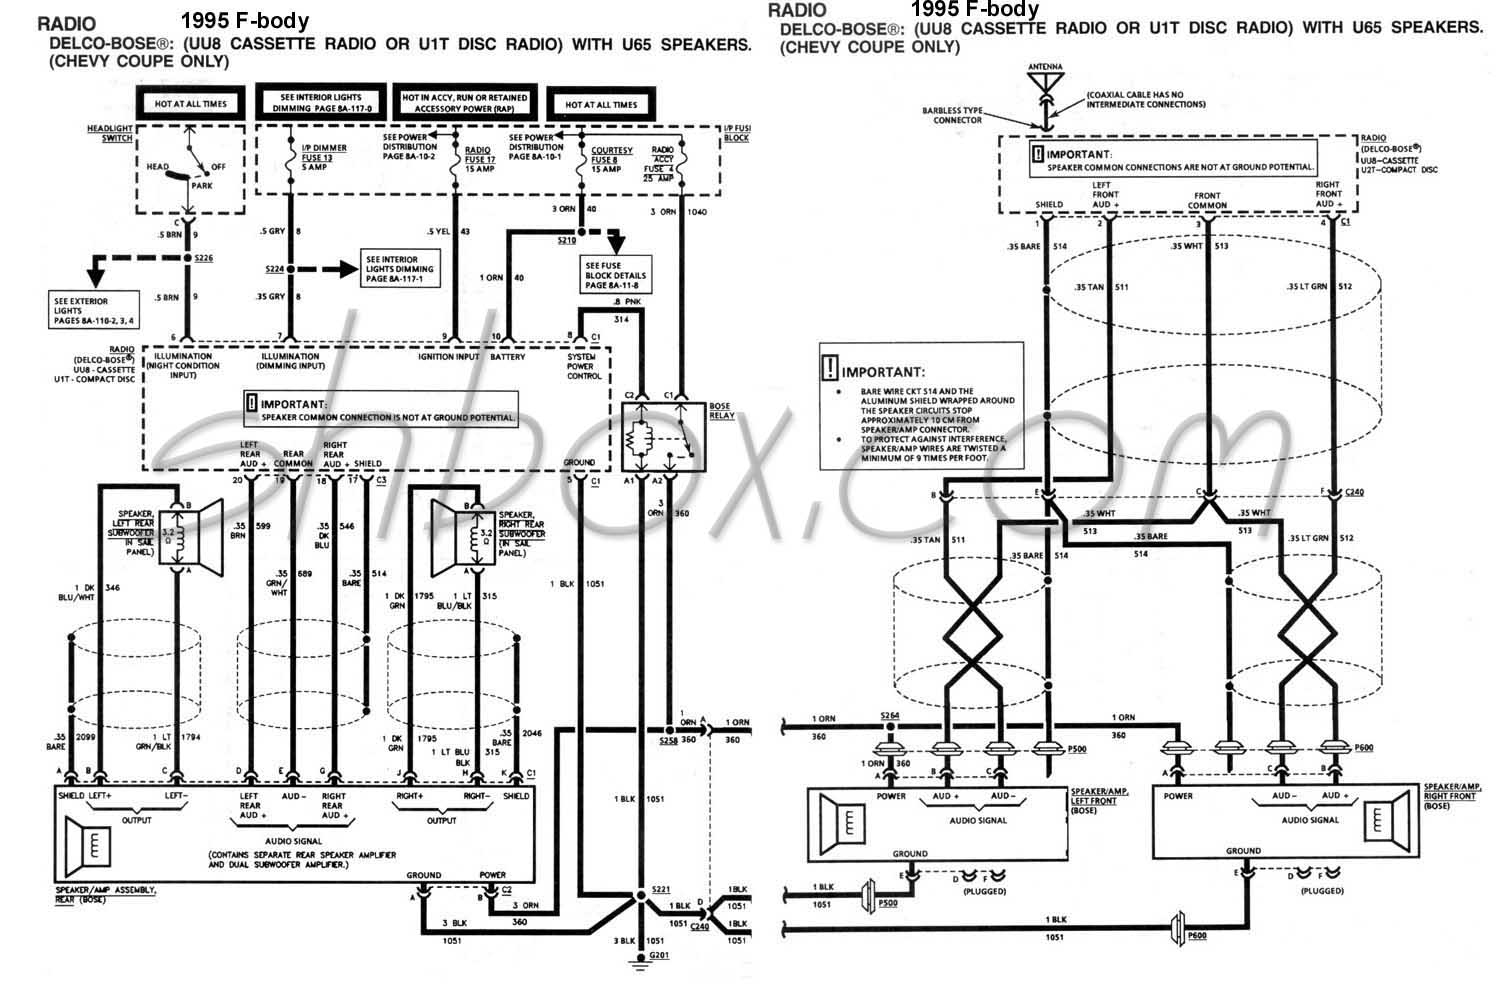 1994 Key West Wiring Diagram - Trusted Wiring Diagram •